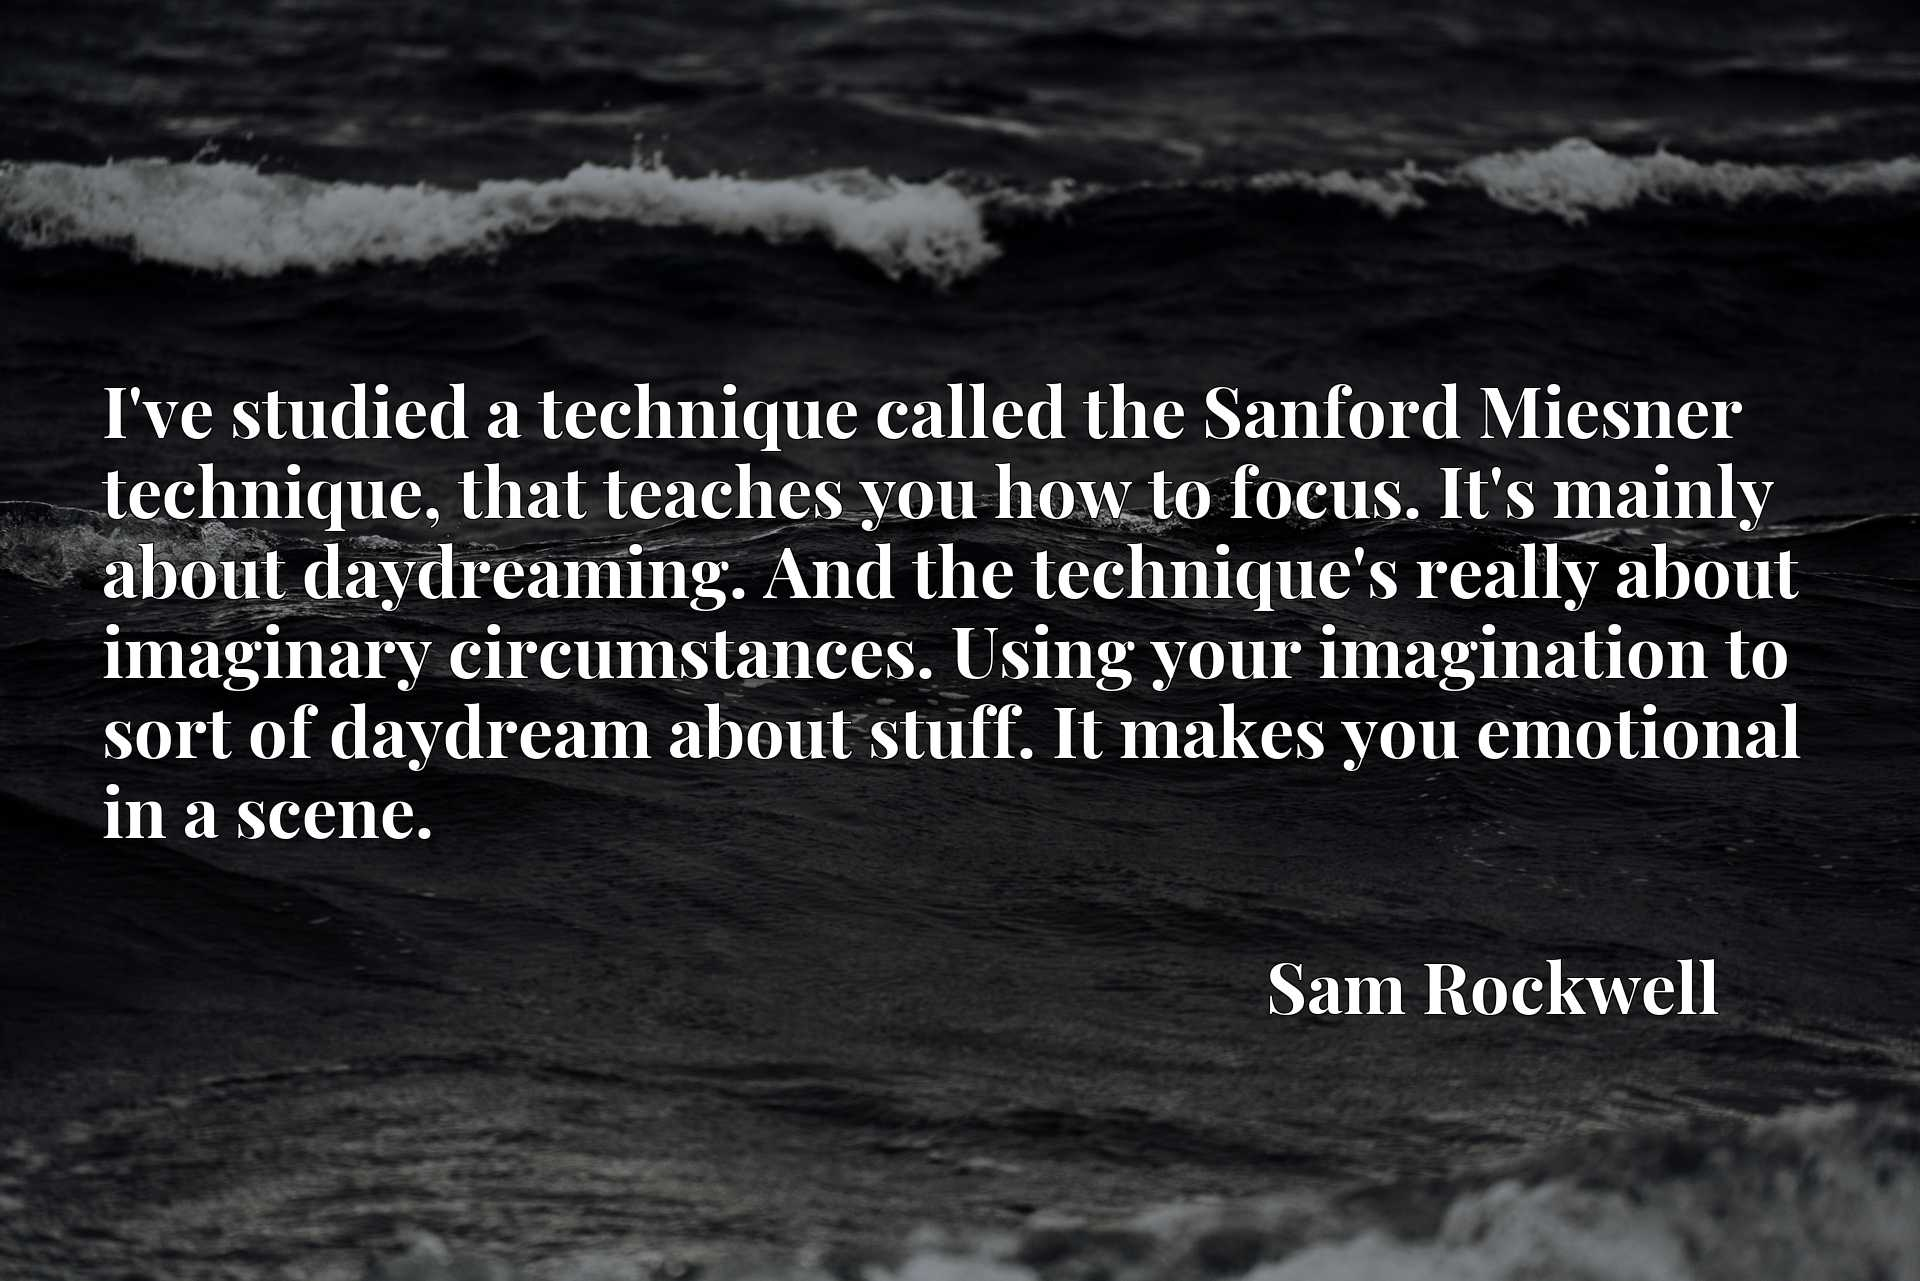 I've studied a technique called the Sanford Miesner technique, that teaches you how to focus. It's mainly about daydreaming. And the technique's really about imaginary circumstances. Using your imagination to sort of daydream about stuff. It makes you emotional in a scene.